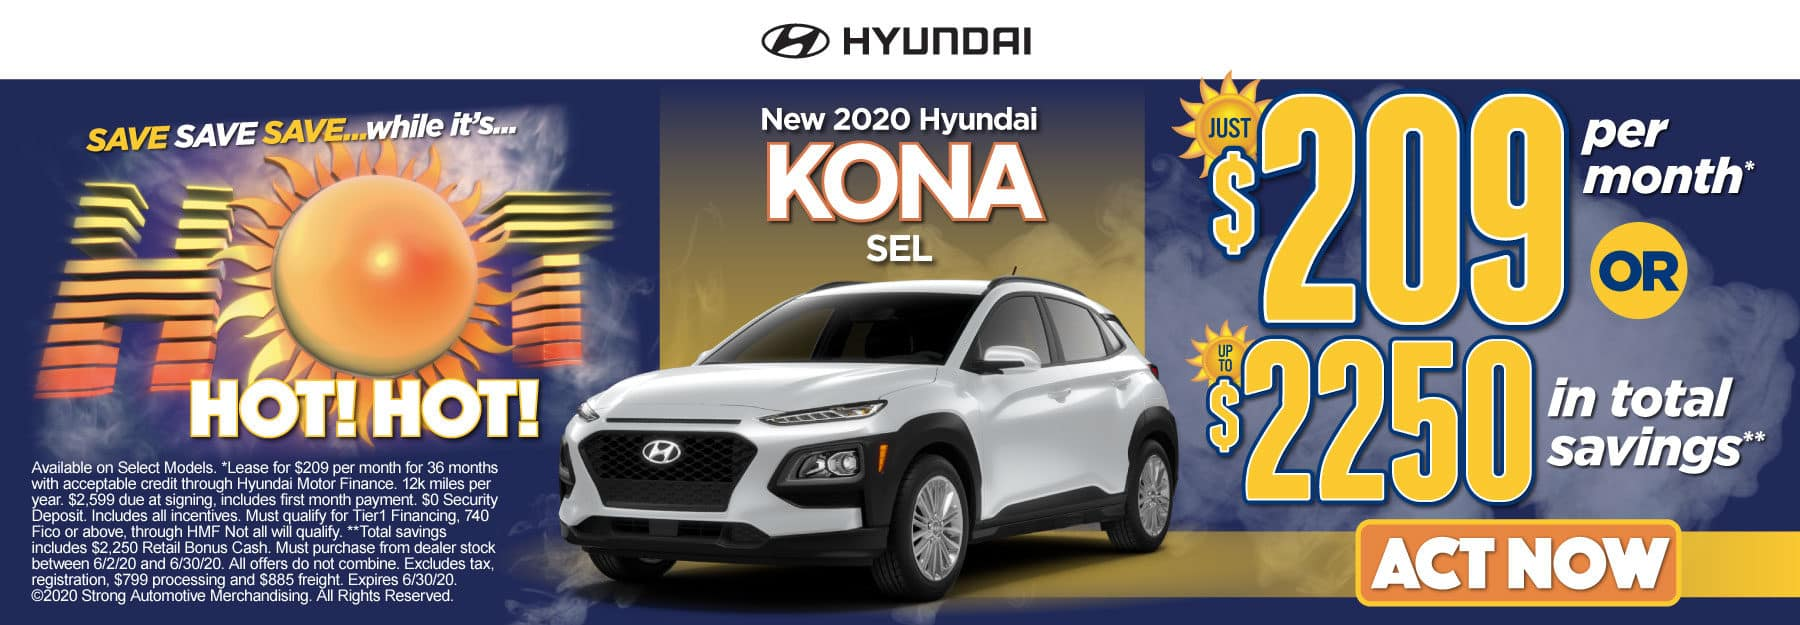 New 2020 Hyundai Kona - Just $209 per month or up to $2250 in total savings - Click to View Inventory